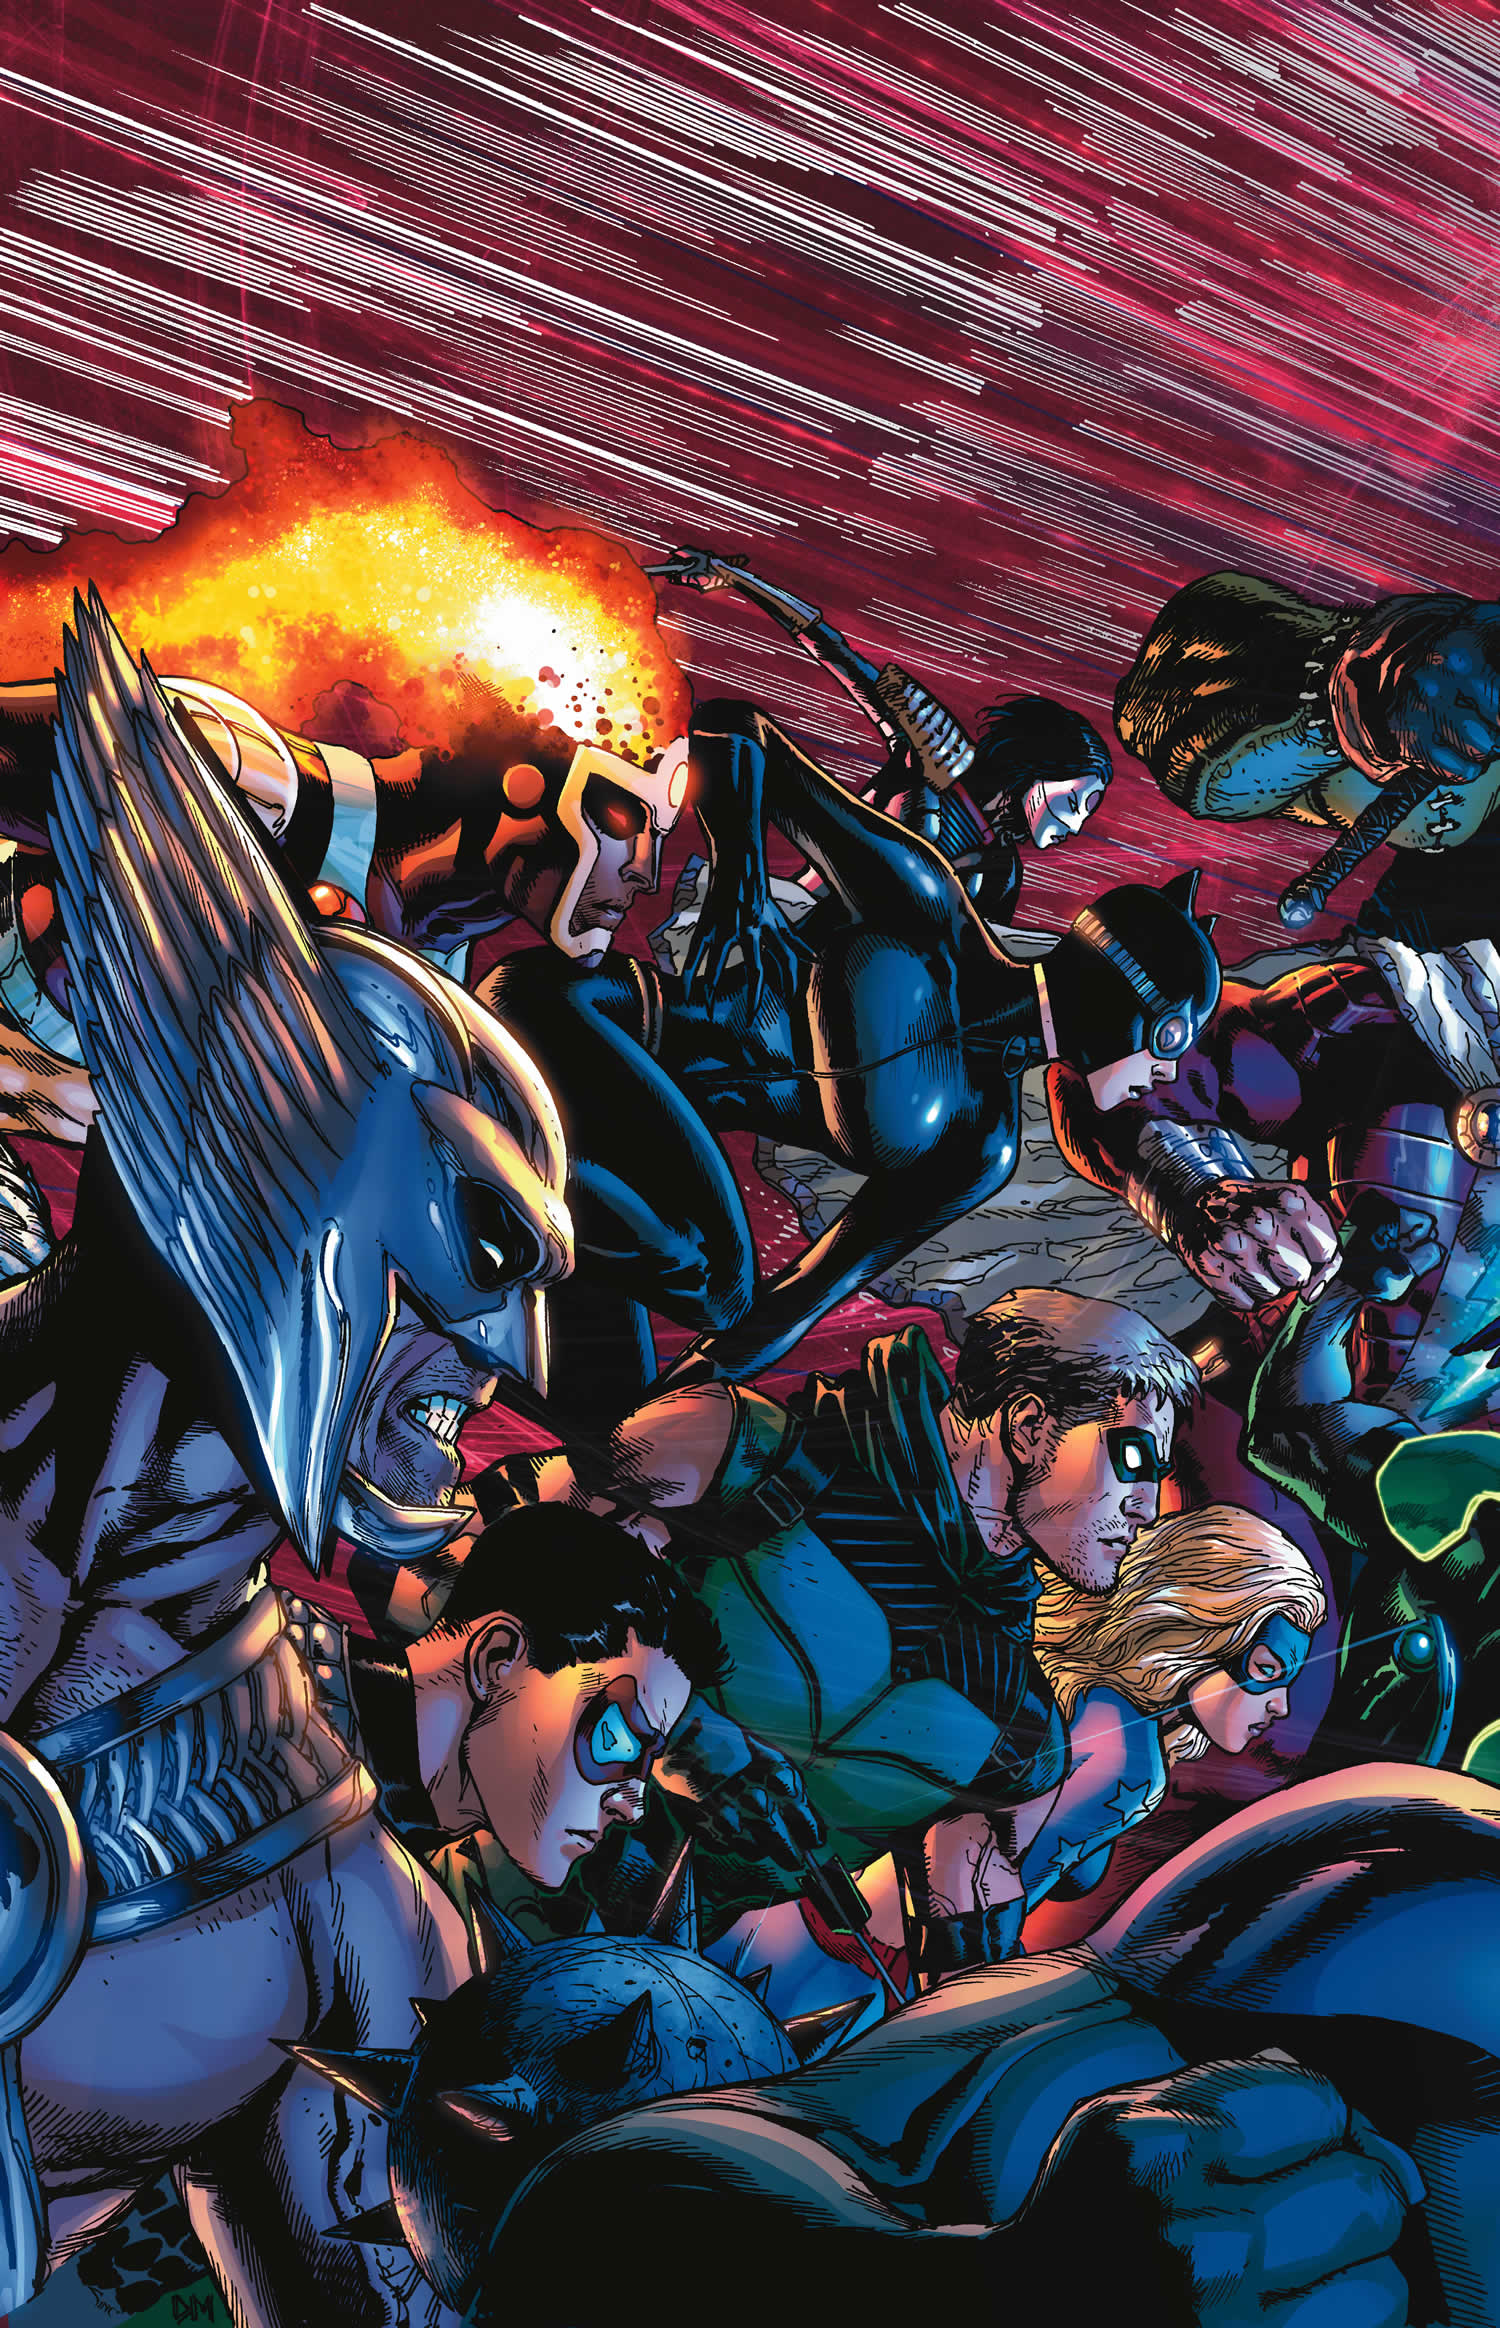 Justice League of America #7 cover by Doug Mahnke